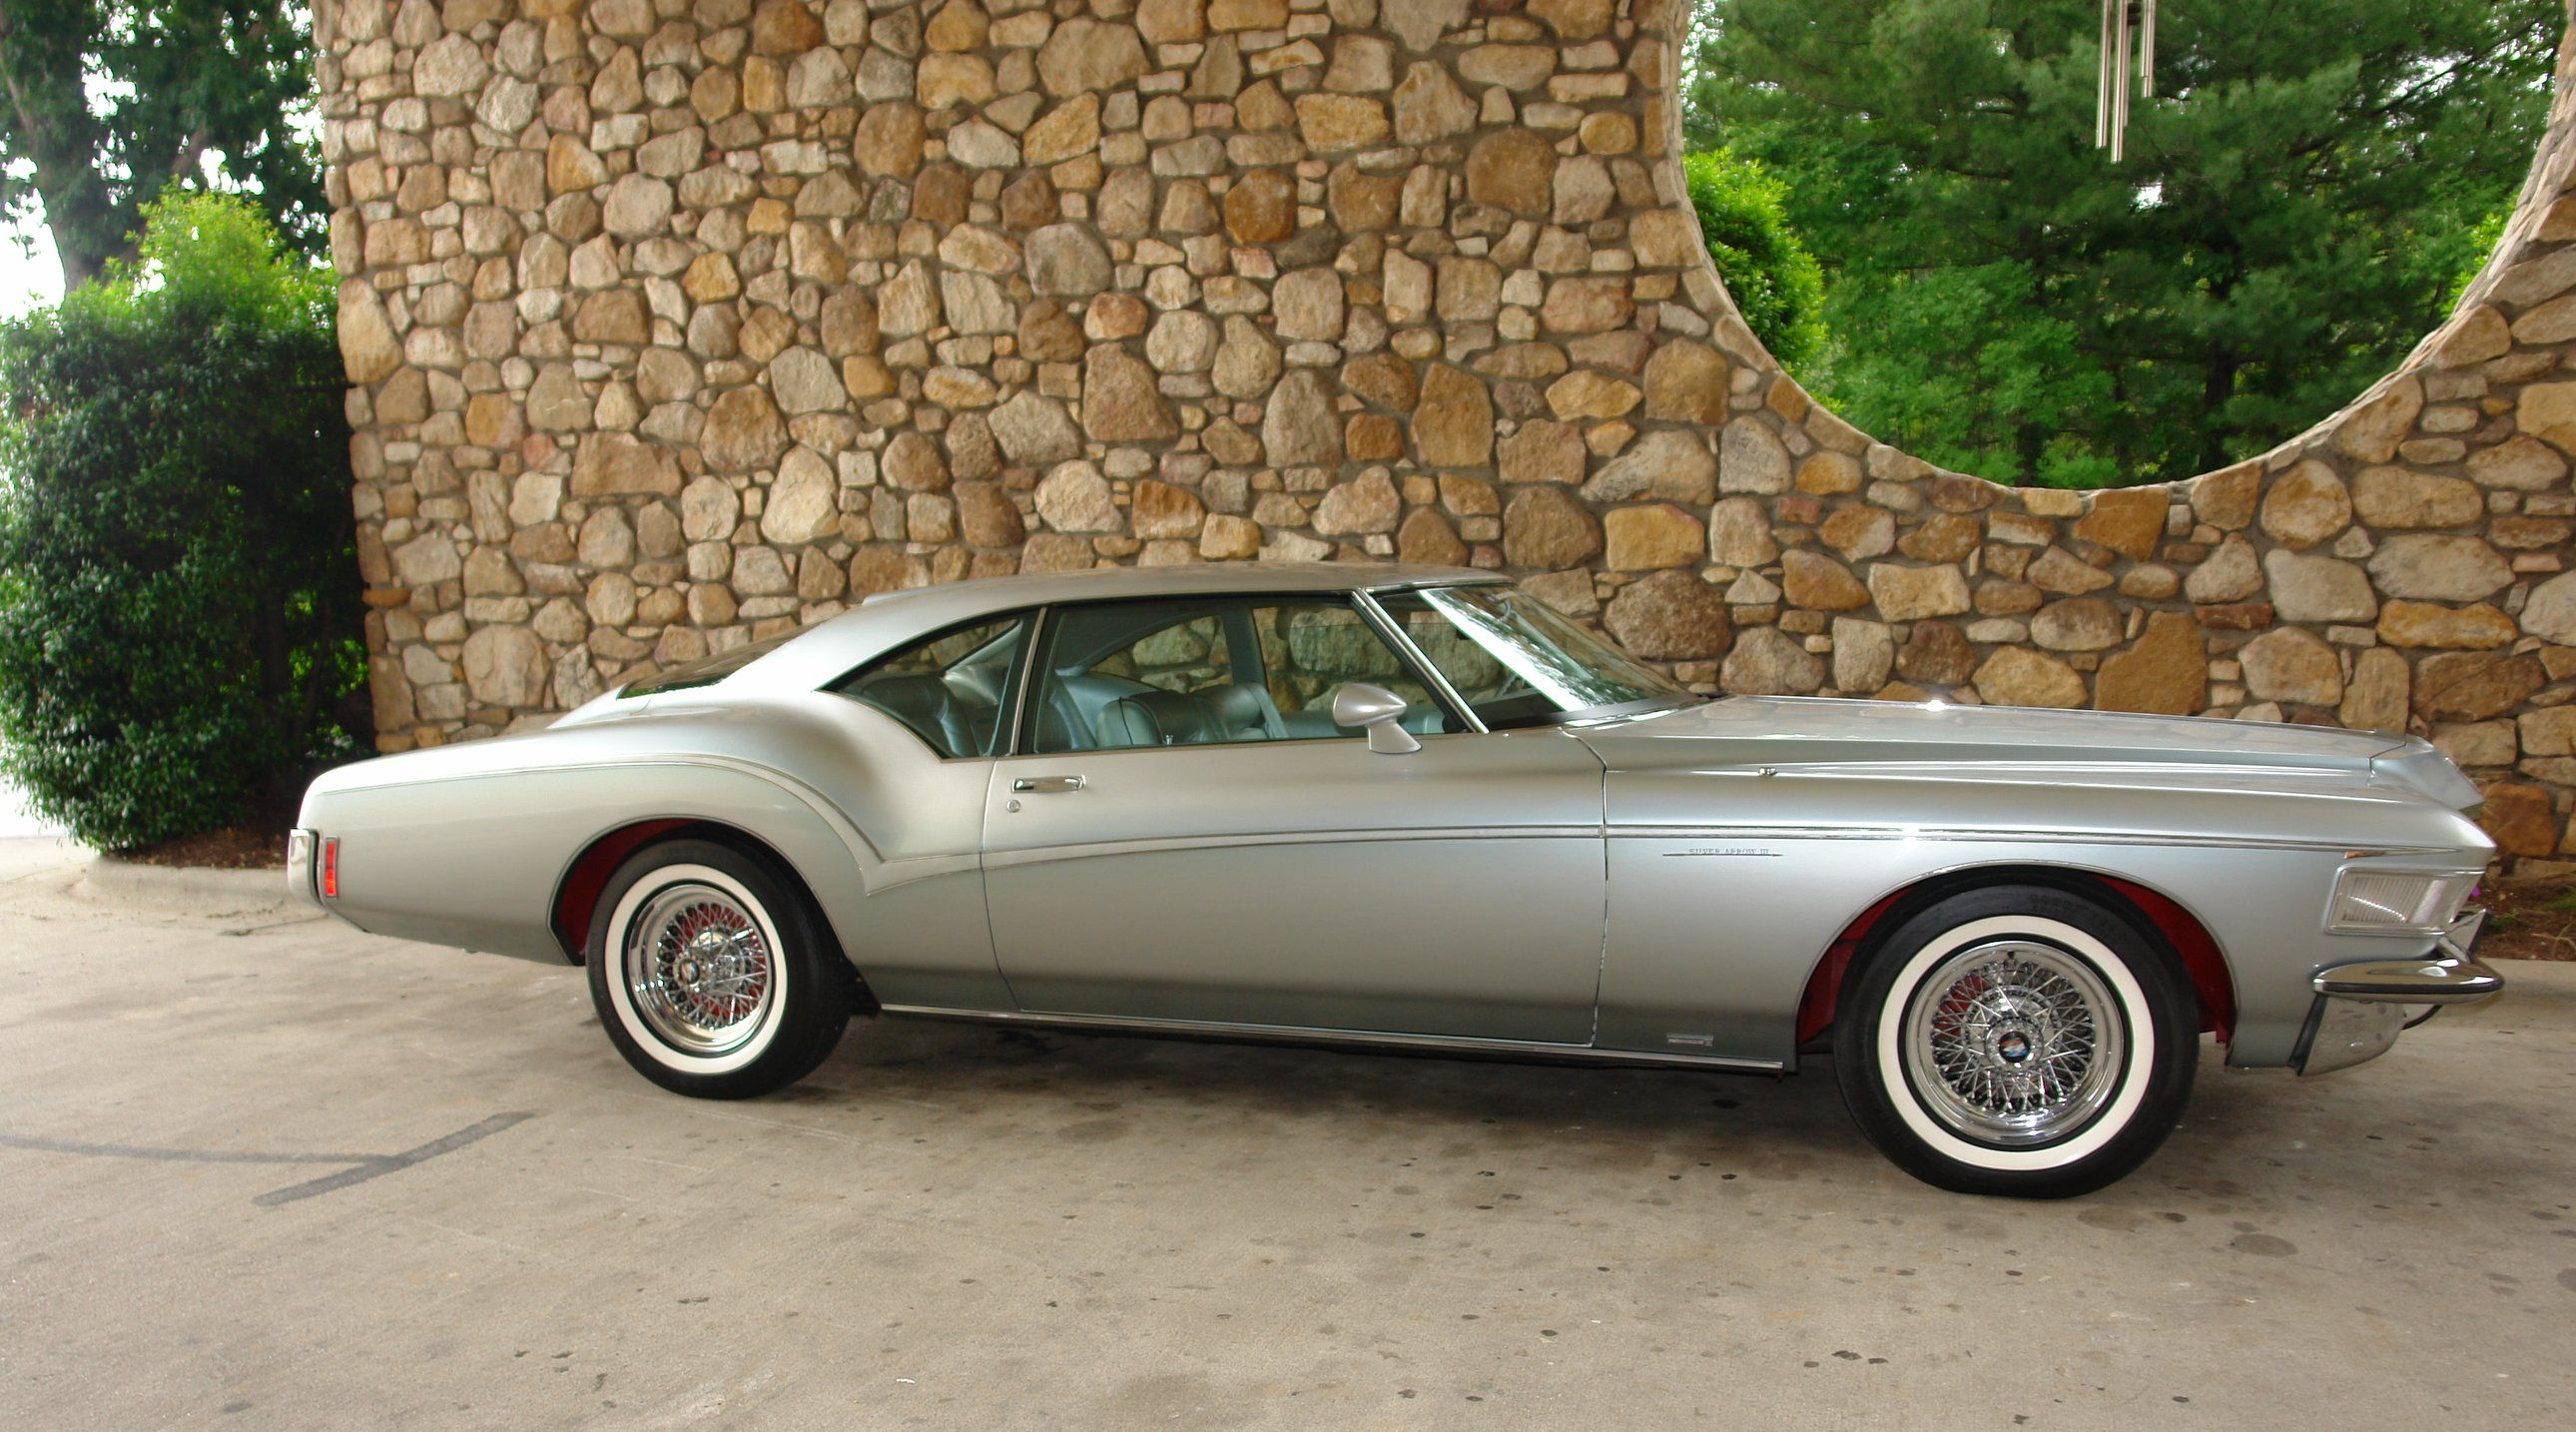 Convertable buick riviera 65 google search cars chrome fins dashes hood ornaments wheels pinterest buick riviera buick and convertible